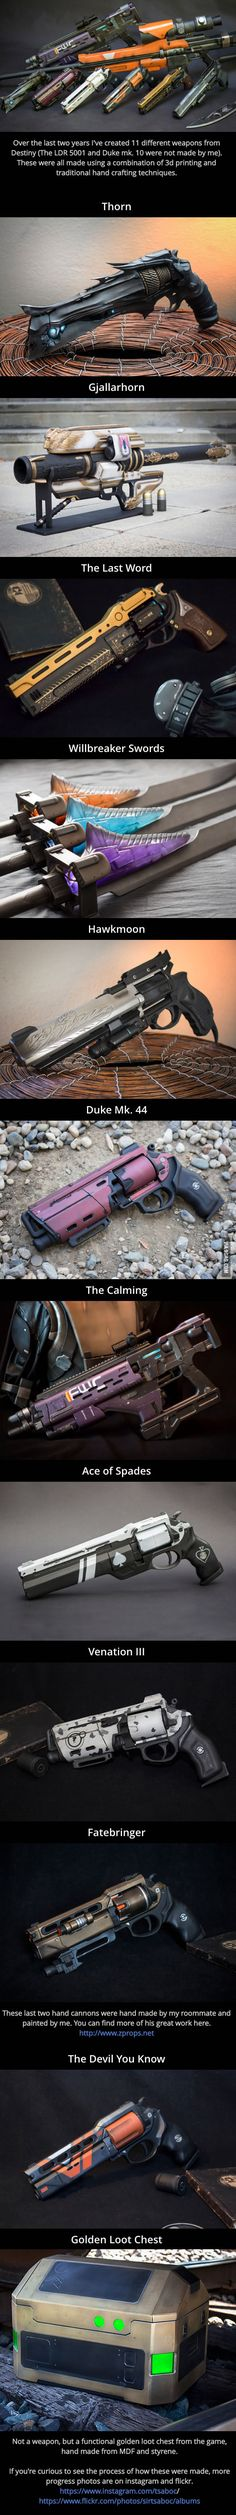 11 real-life weapons from Destiny by Eric Newgard